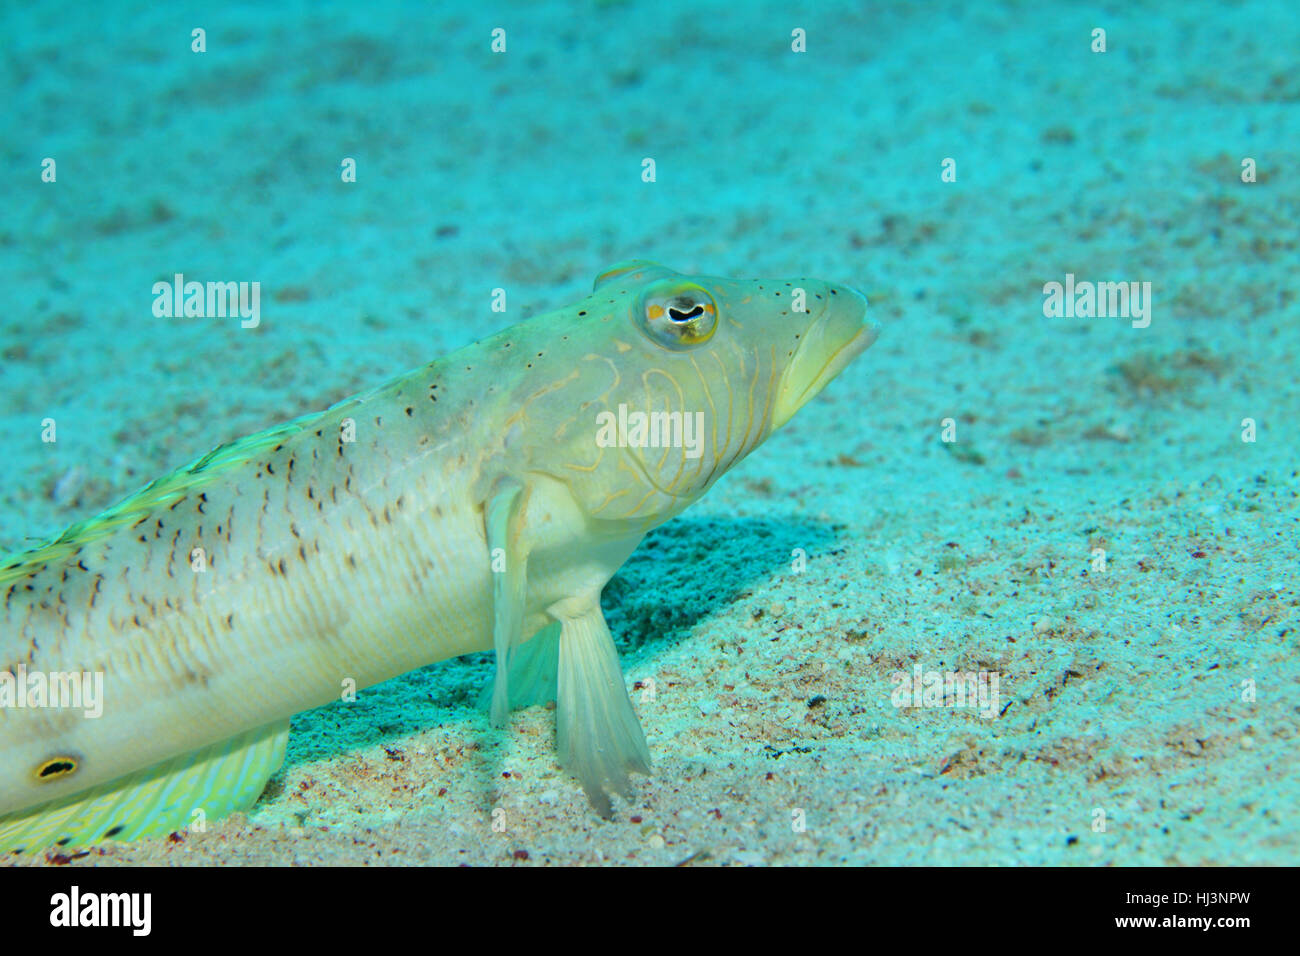 Speckled sandperch fish (Parapercis hexophthalma) underwater on the sandy bottom of the red sea - Stock Image